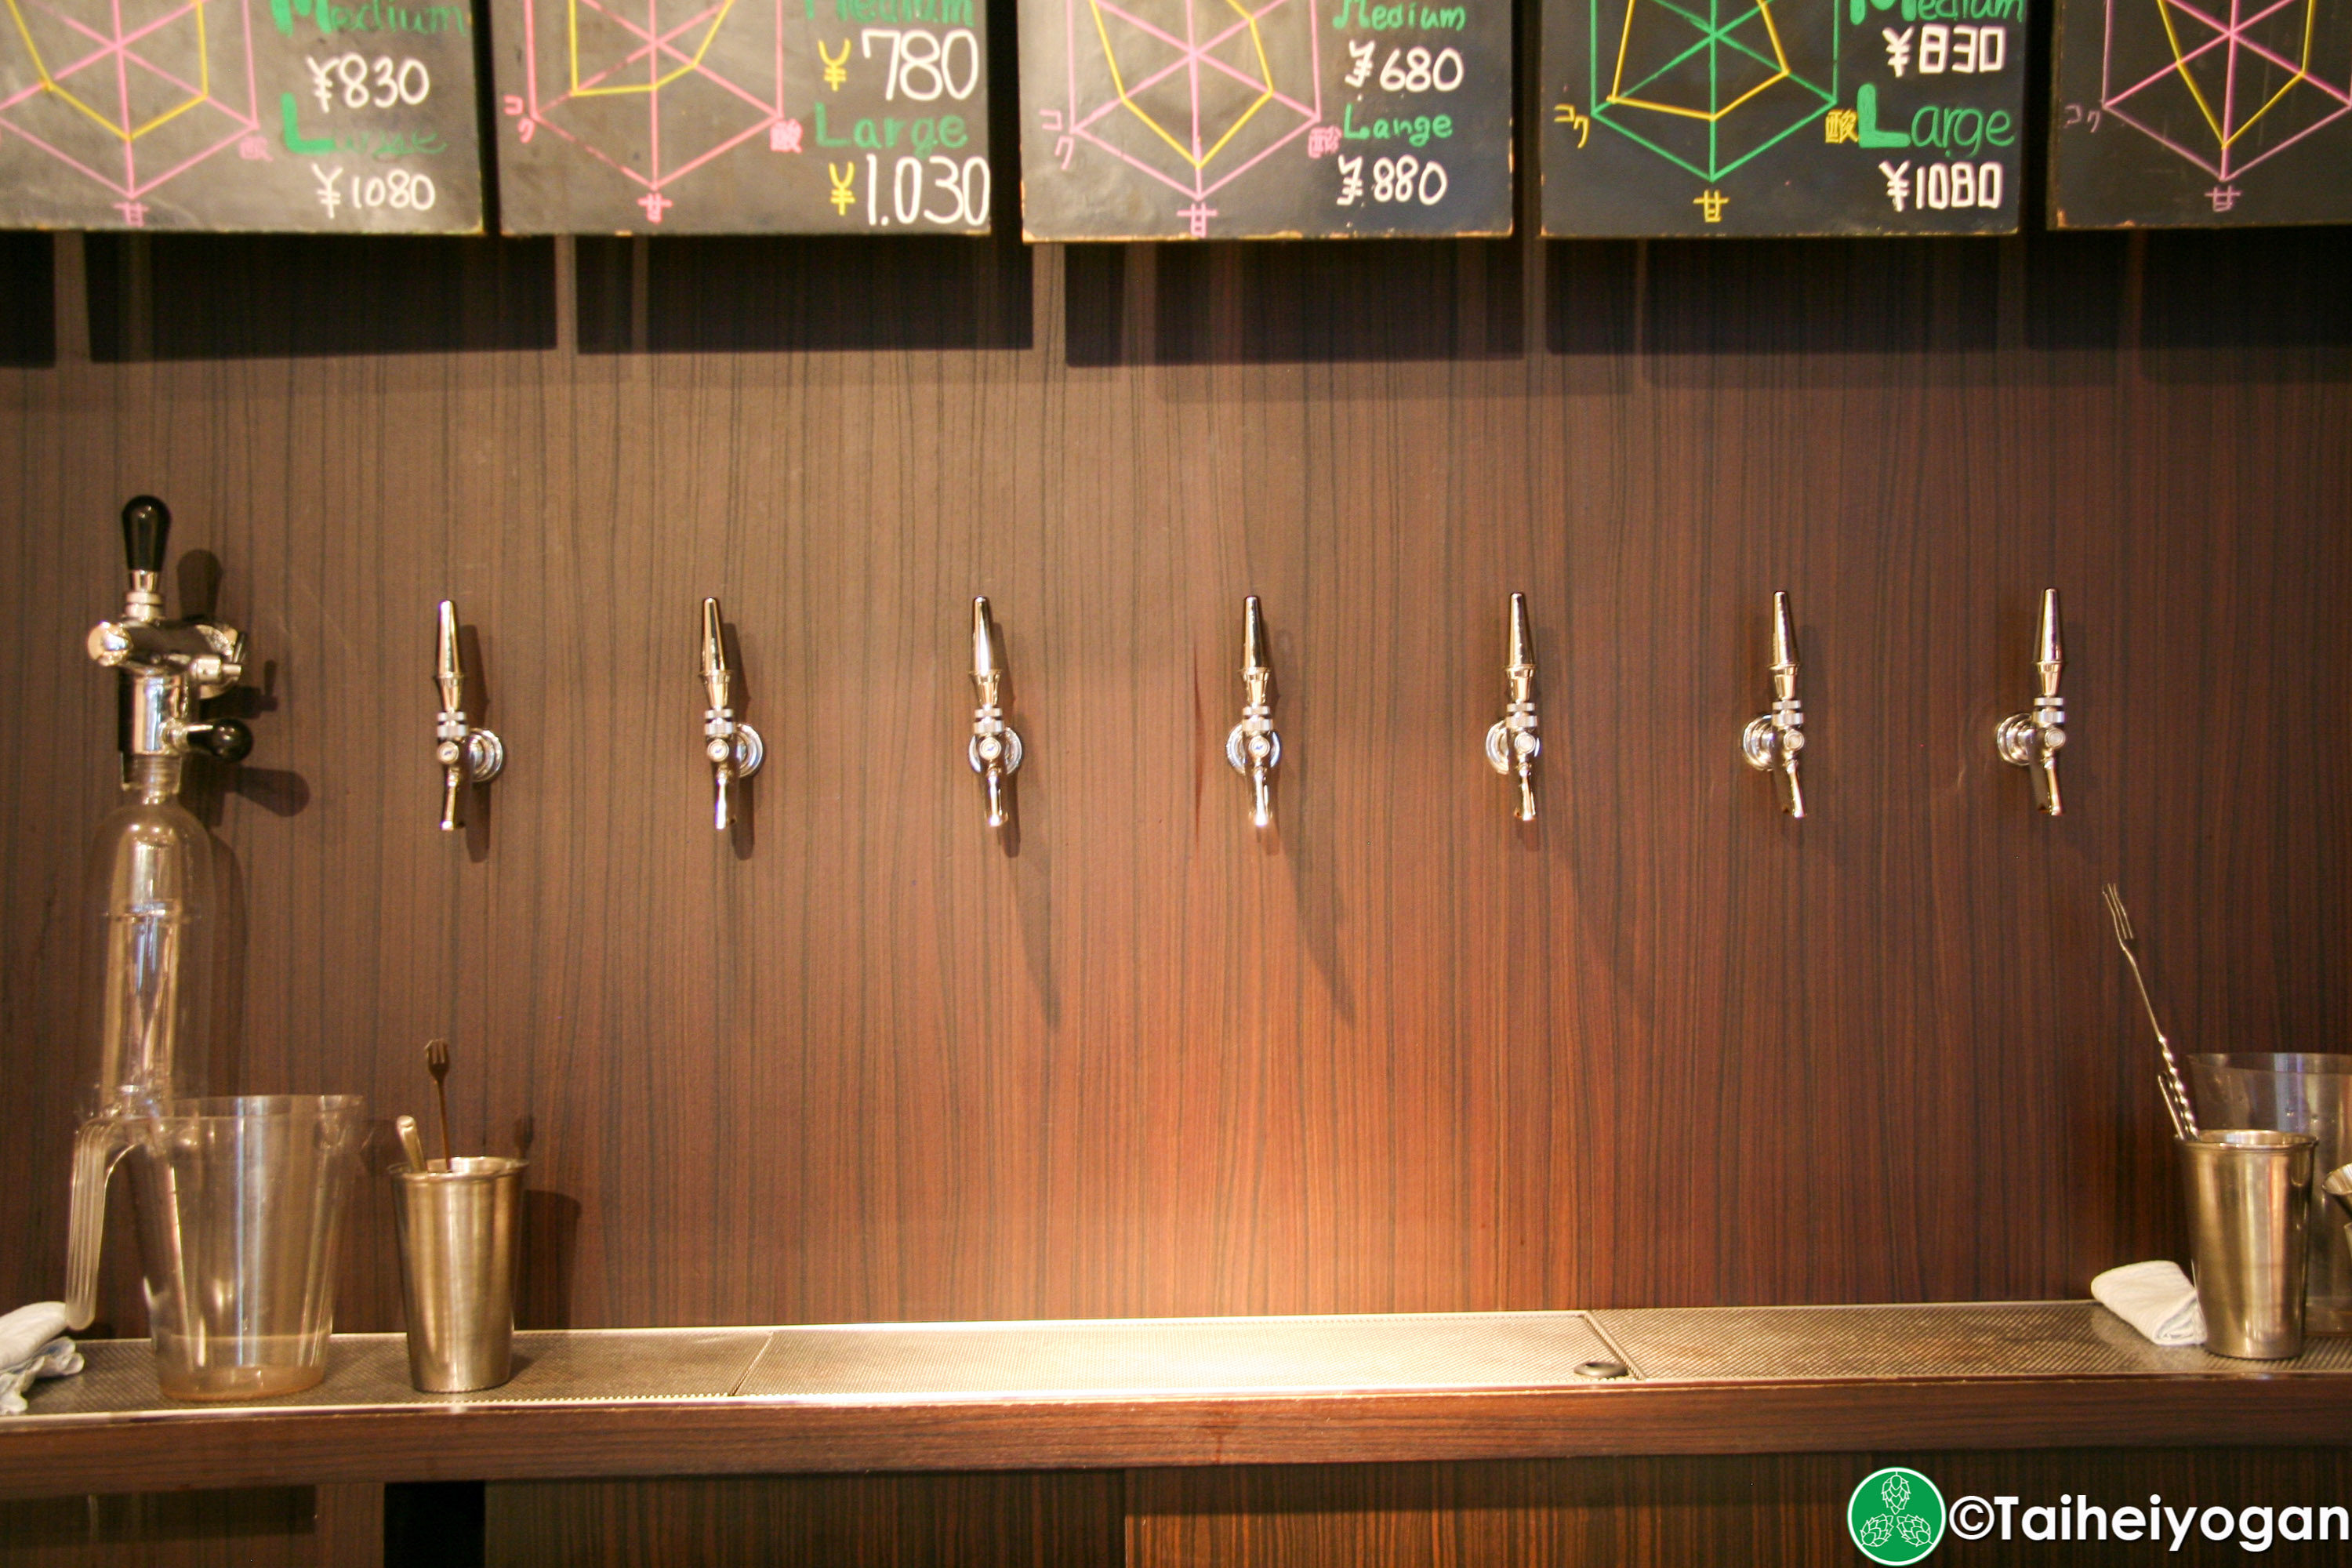 T.T Brewery - Interior - Bar Taps